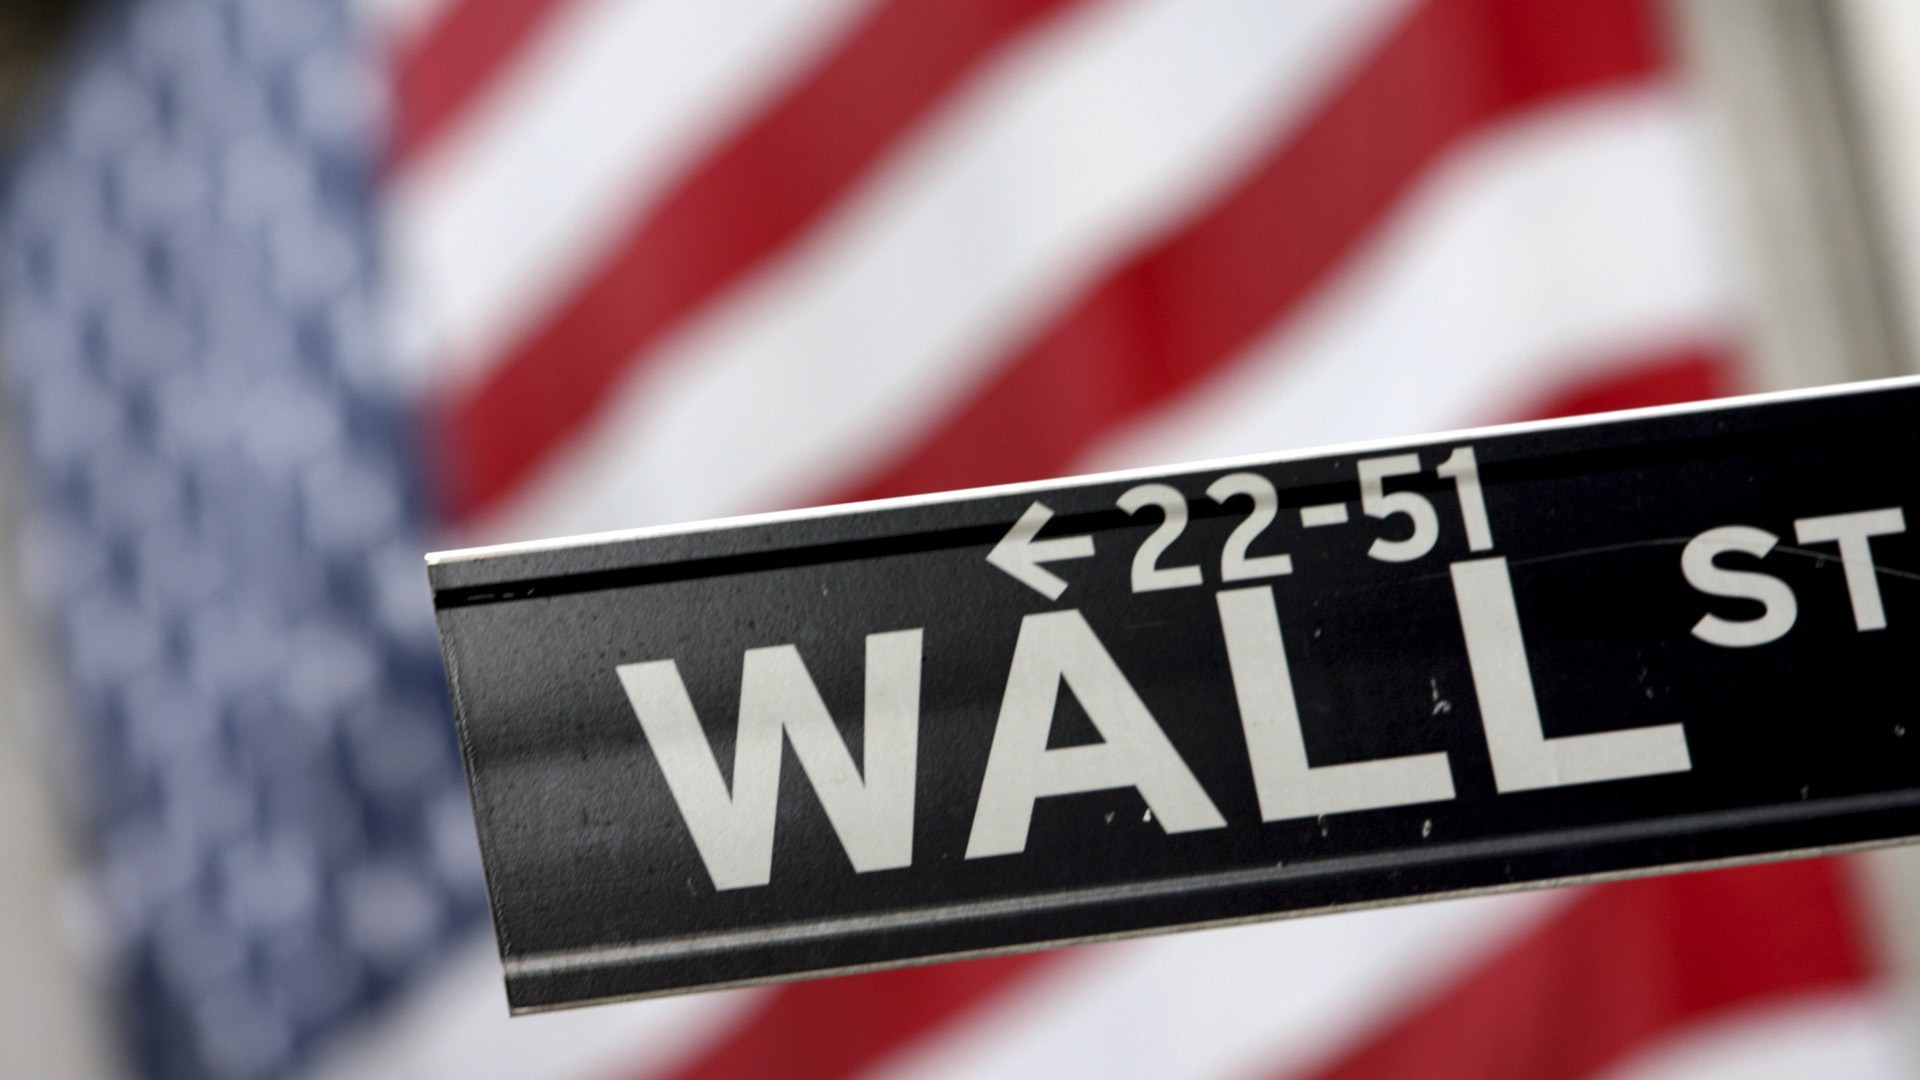 4 HD Wall Street Wallpapers